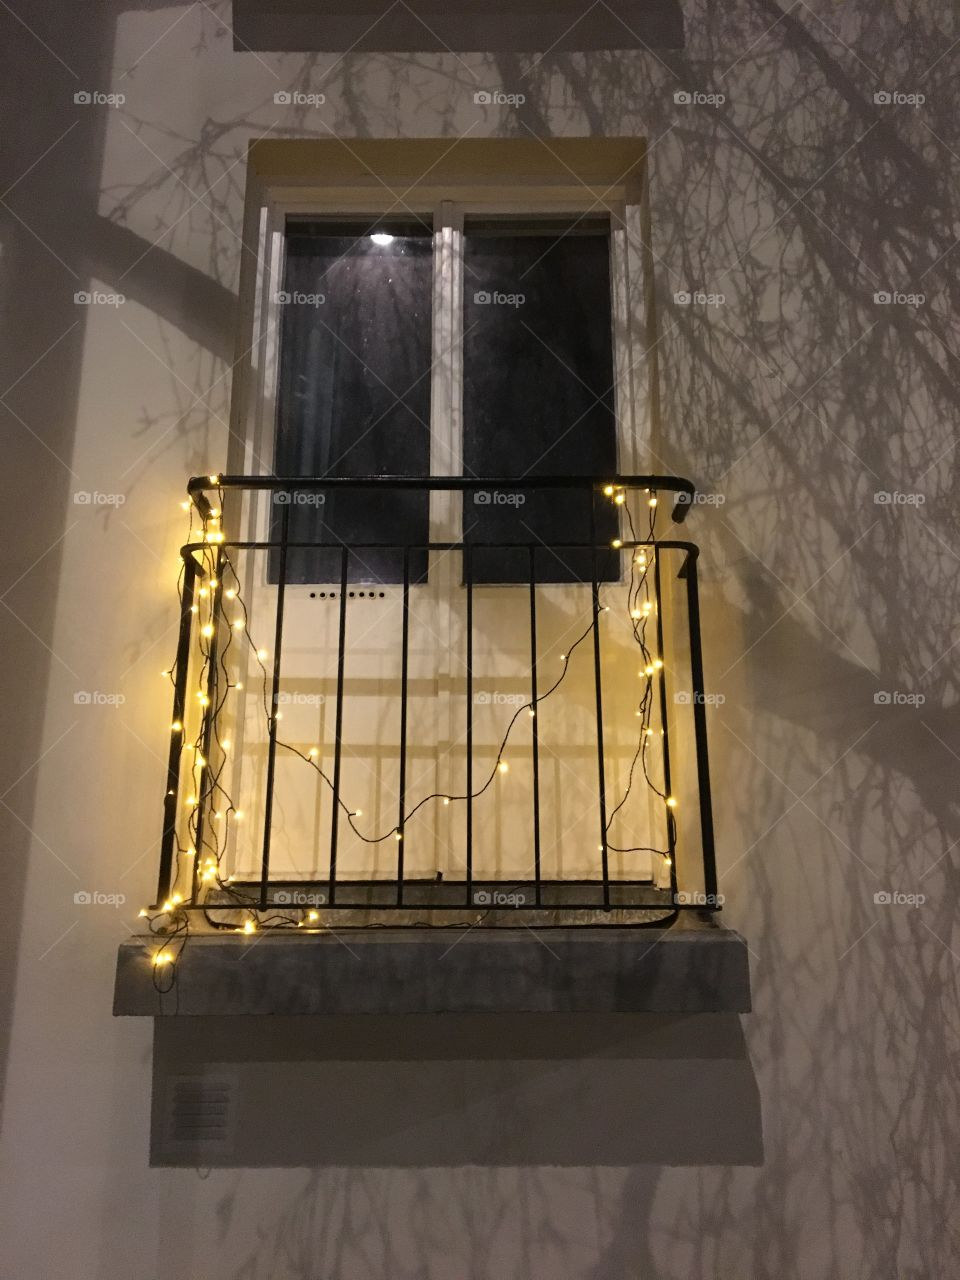 French balcony and lights